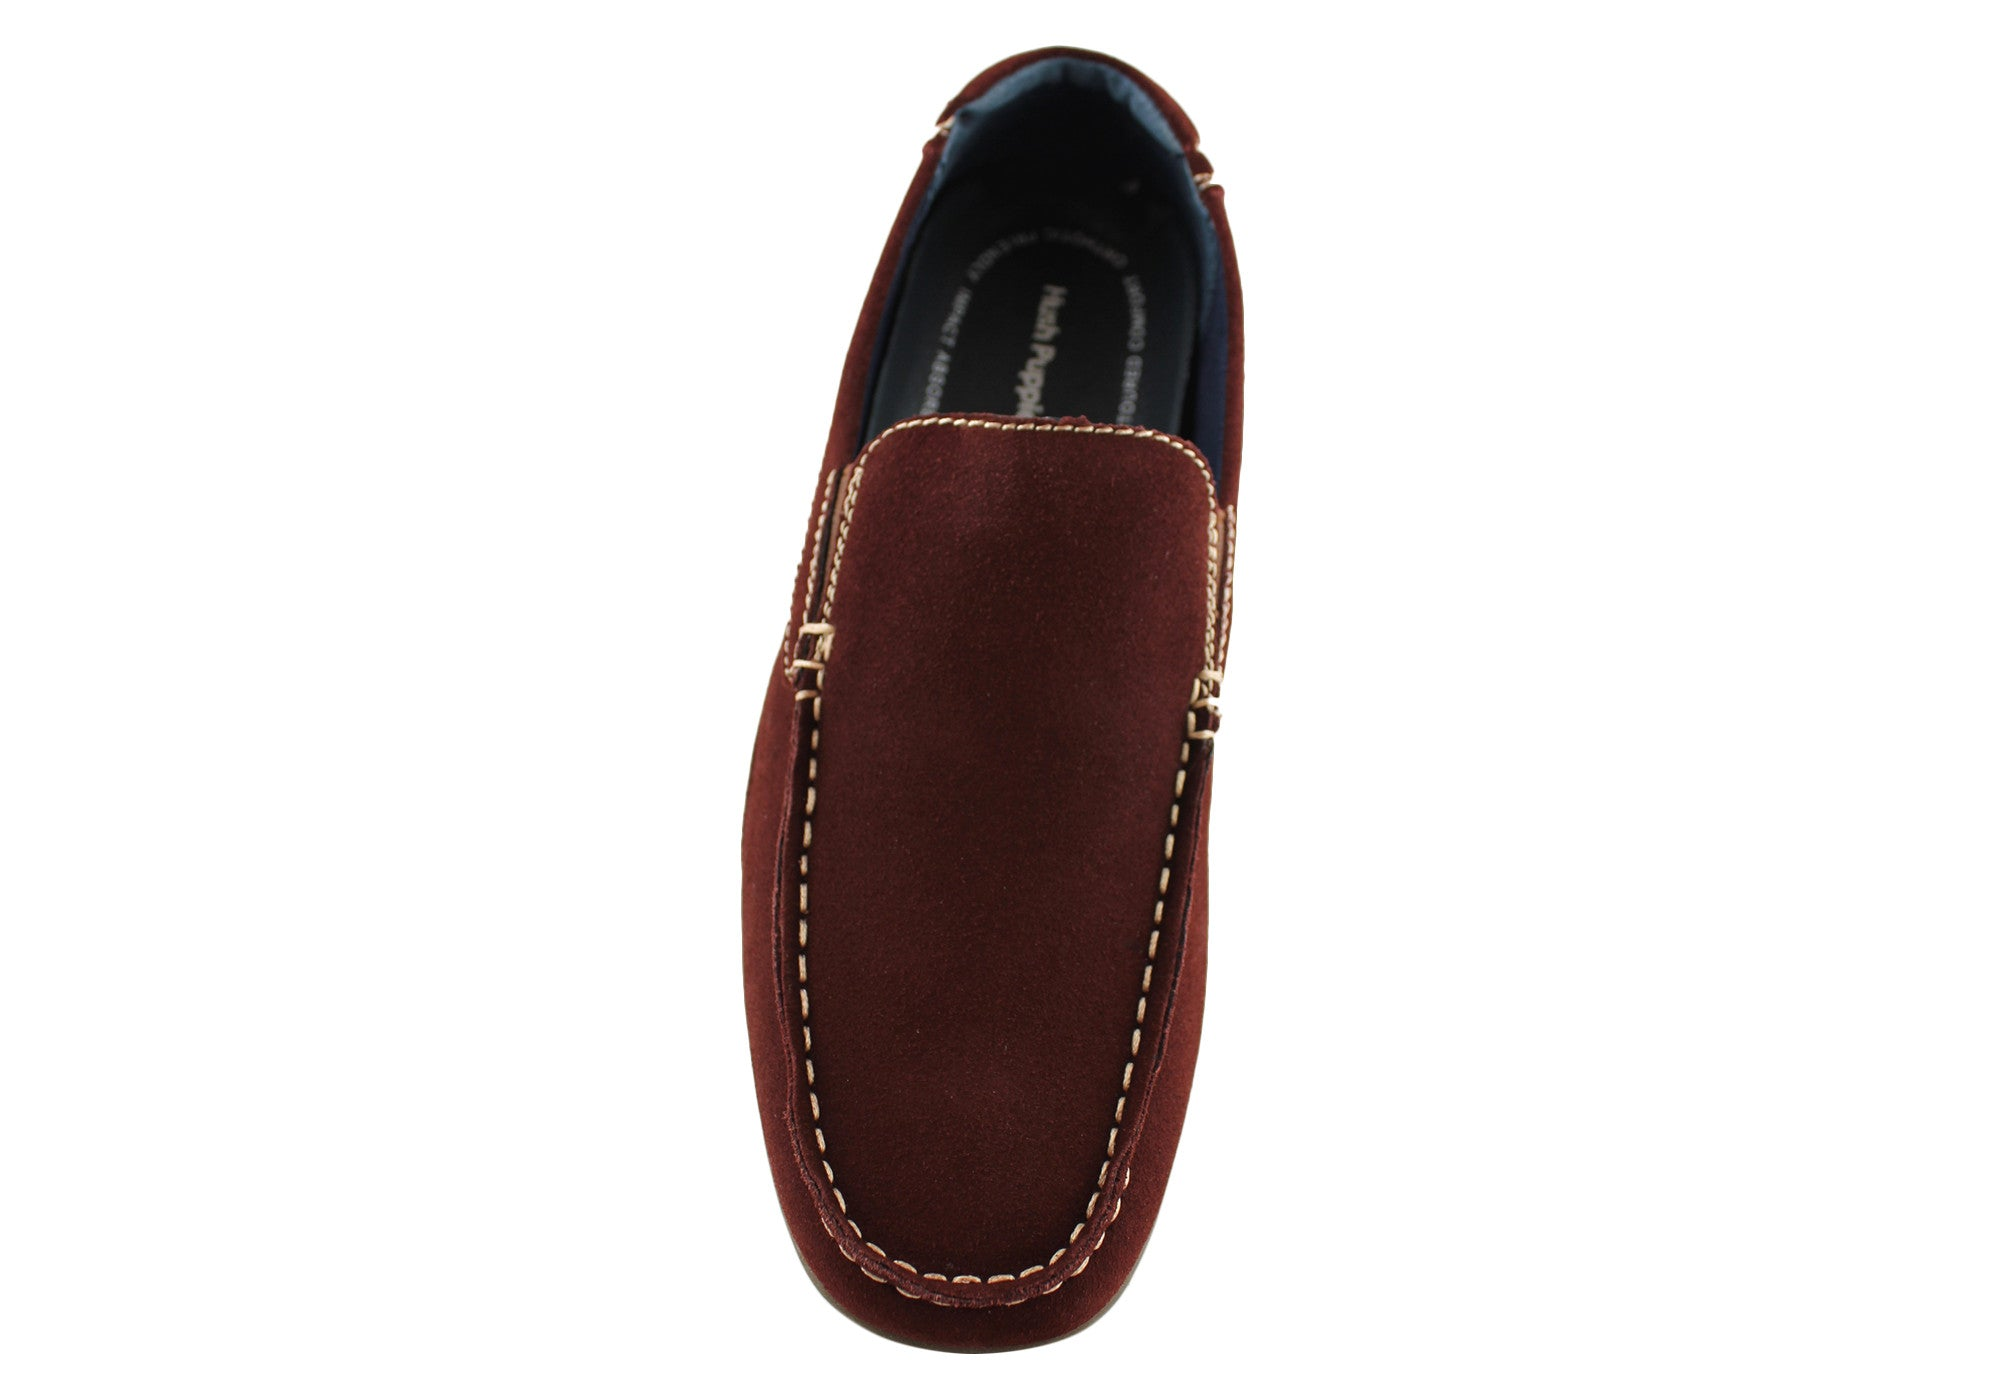 Hush Puppies Nomad Mens Casual Loafers/Shoes